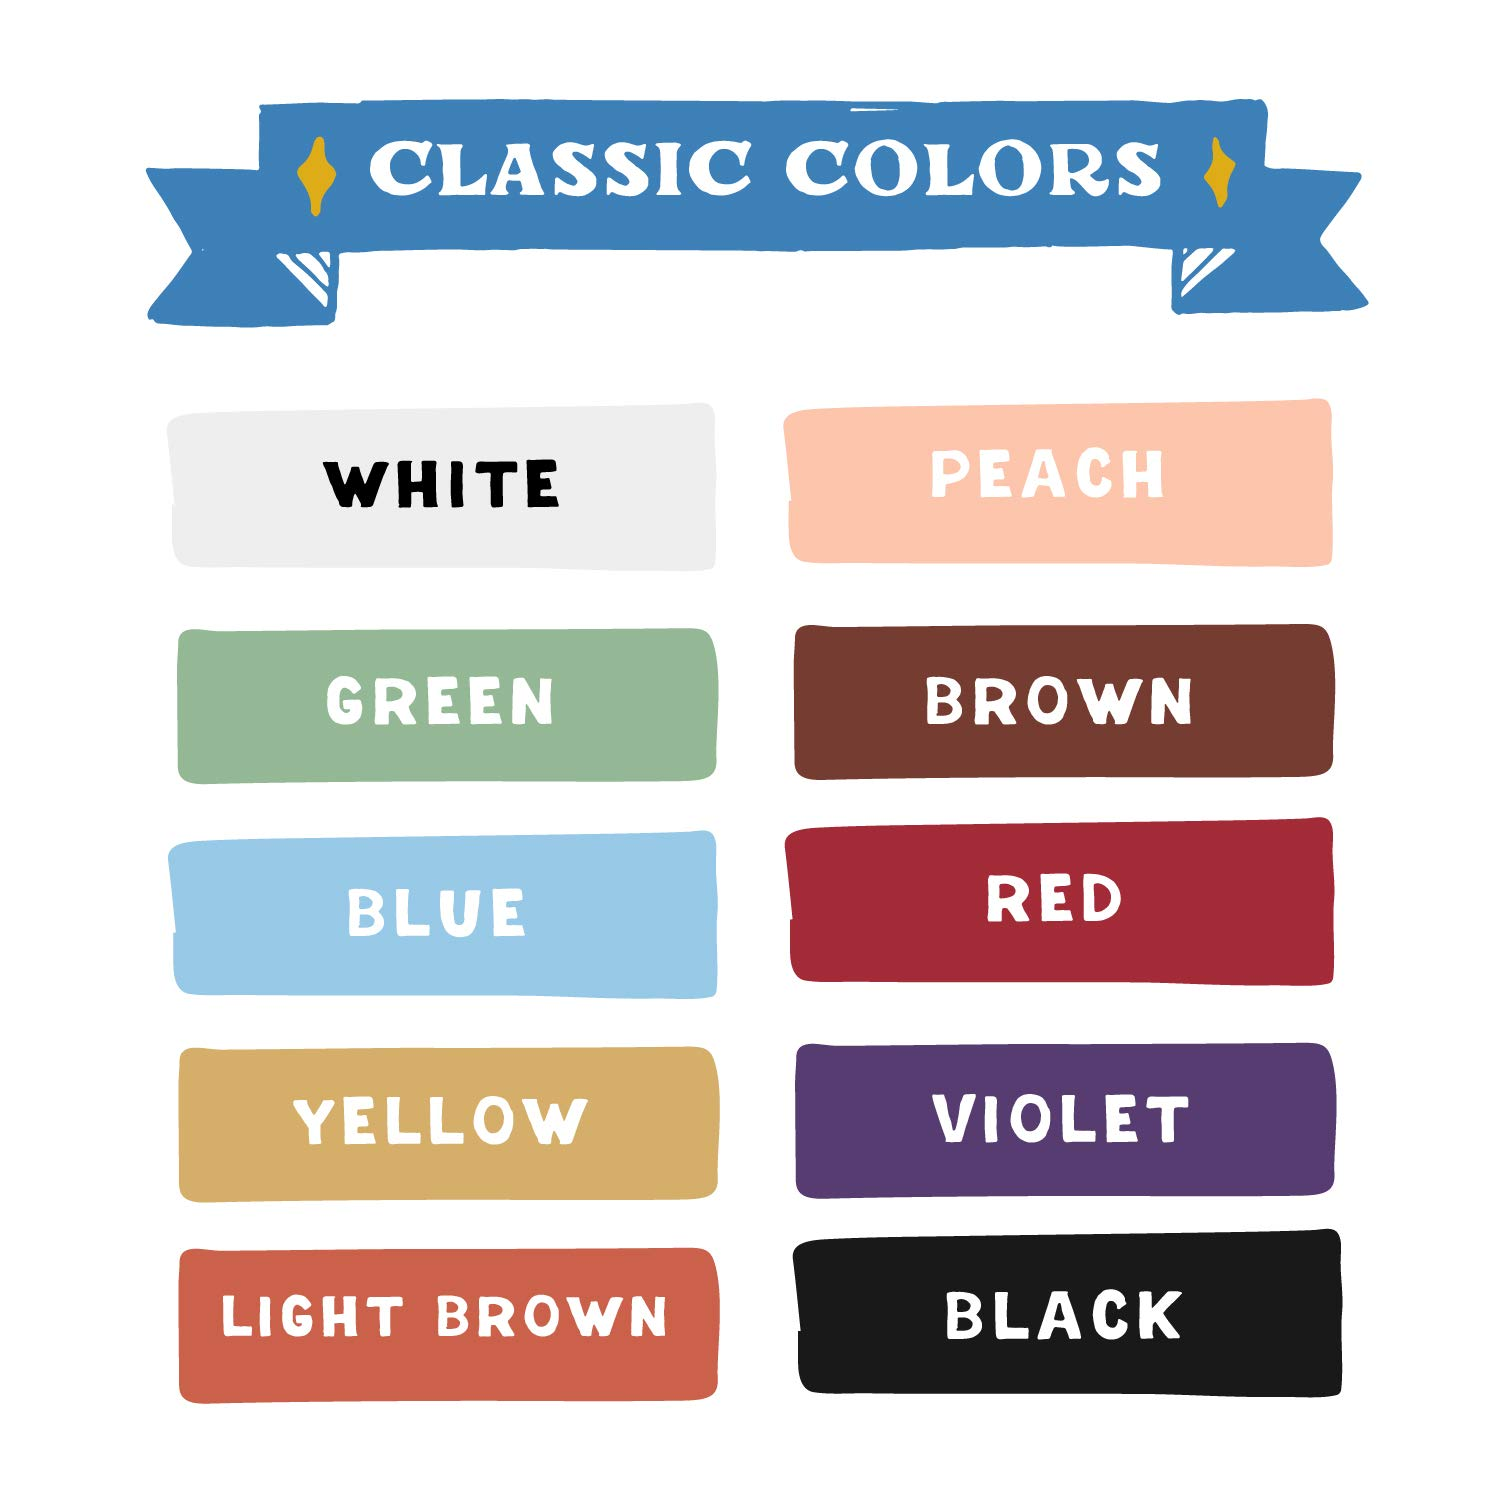 Chalkboard Chalk Markers by VersaChalk - Classic Colors (10-Pack)   Dust Free, Water-Based, Non-Toxic   Wet Erase Chalk Ink Pens by VersaChalk (Image #3)